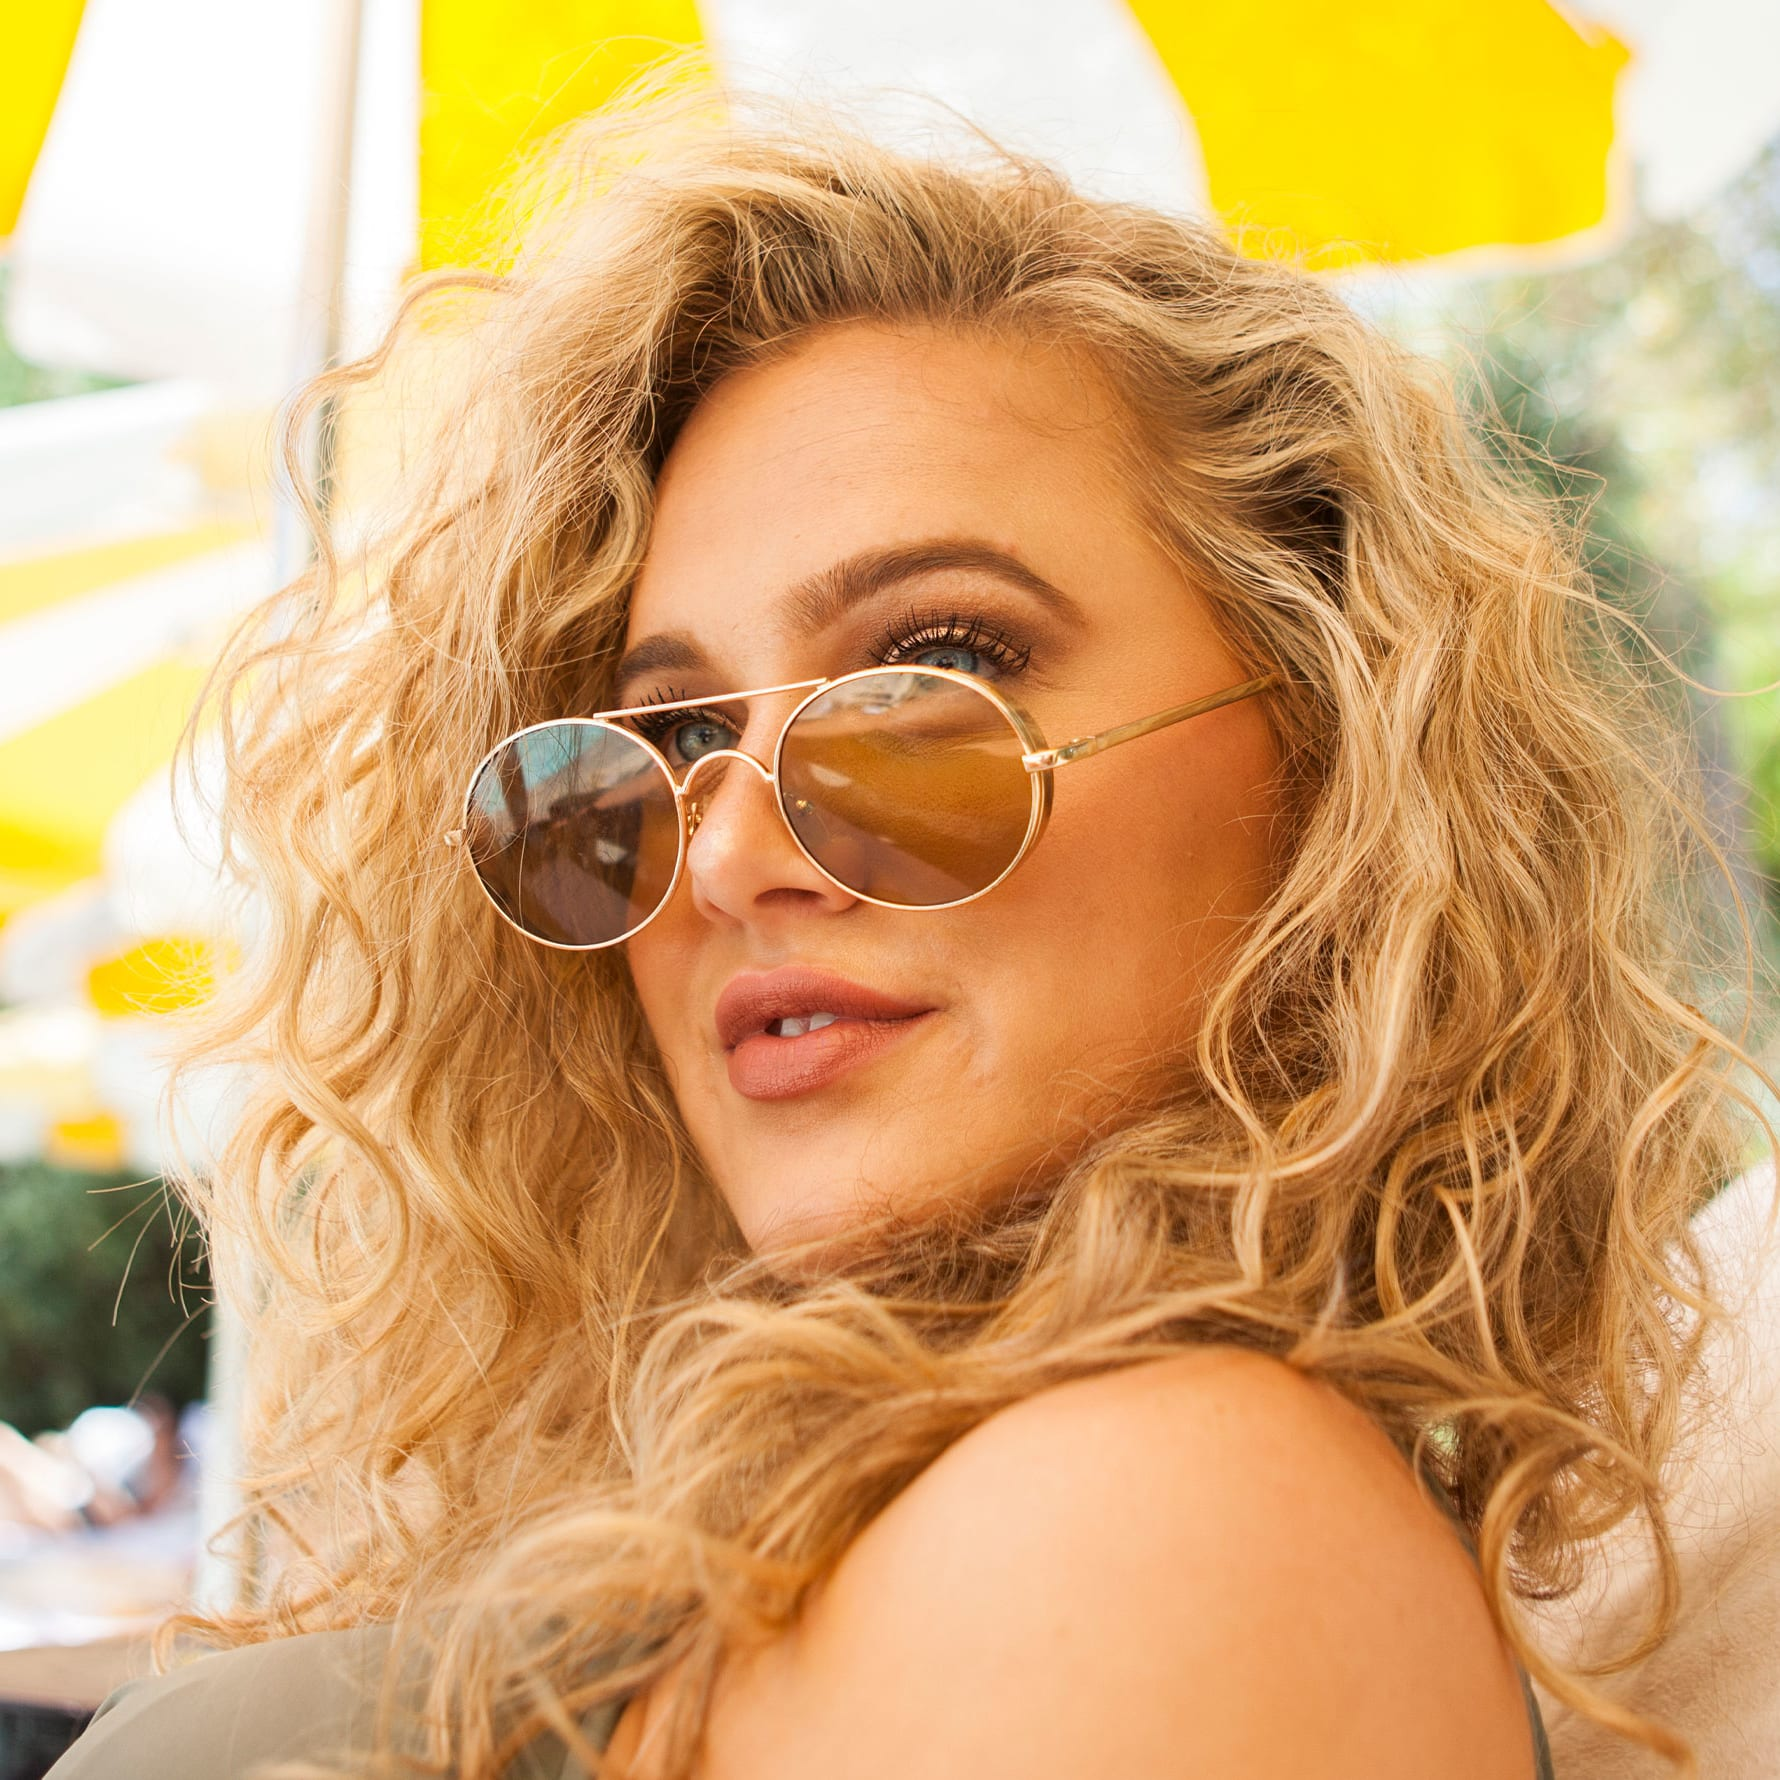 woman with blonde wavy hair wearing sunglasses